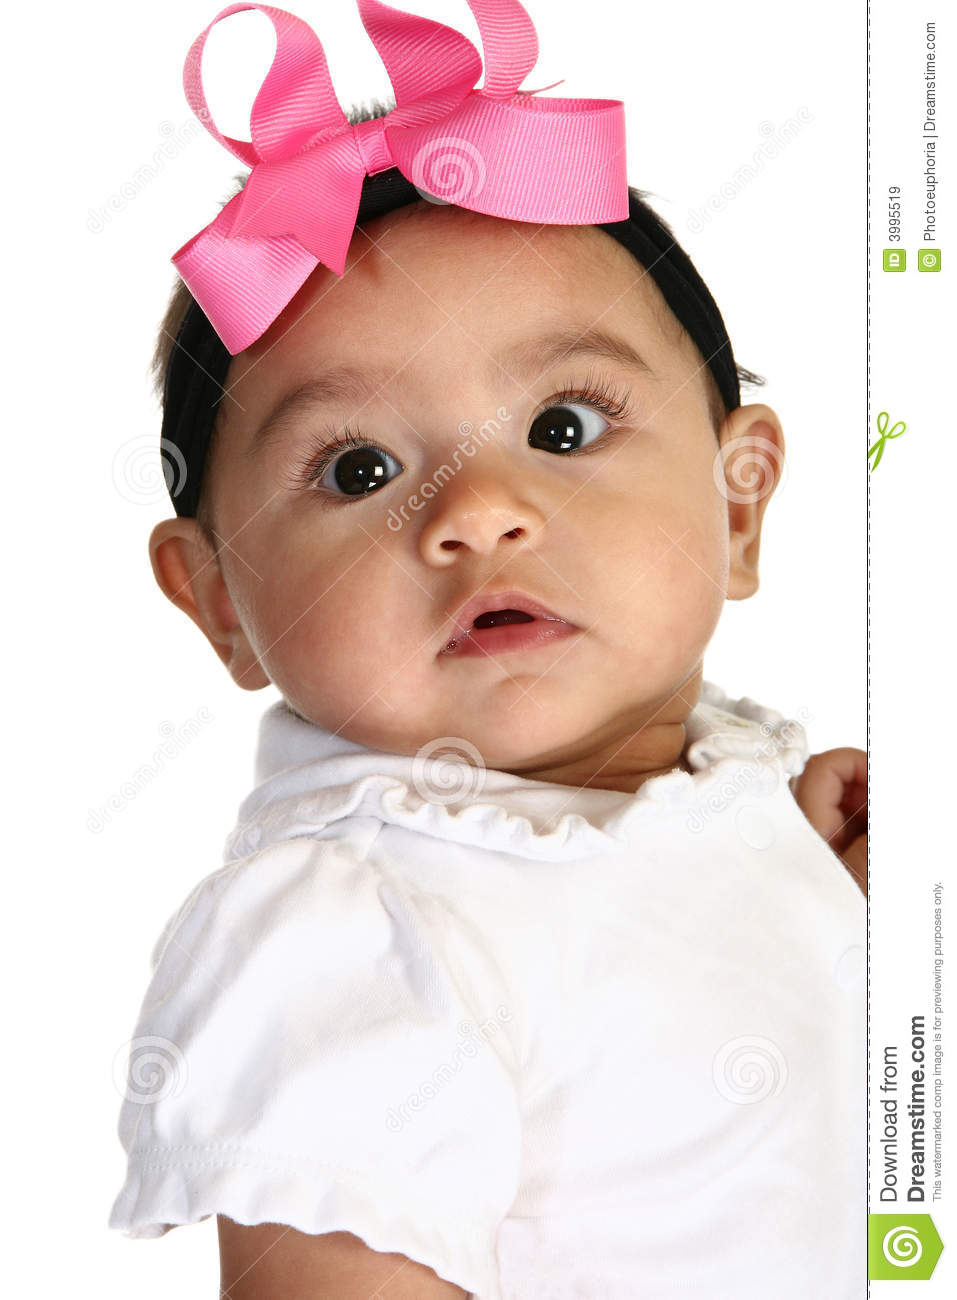 beautiful hispanic baby girl stock image - image of lips, pretty